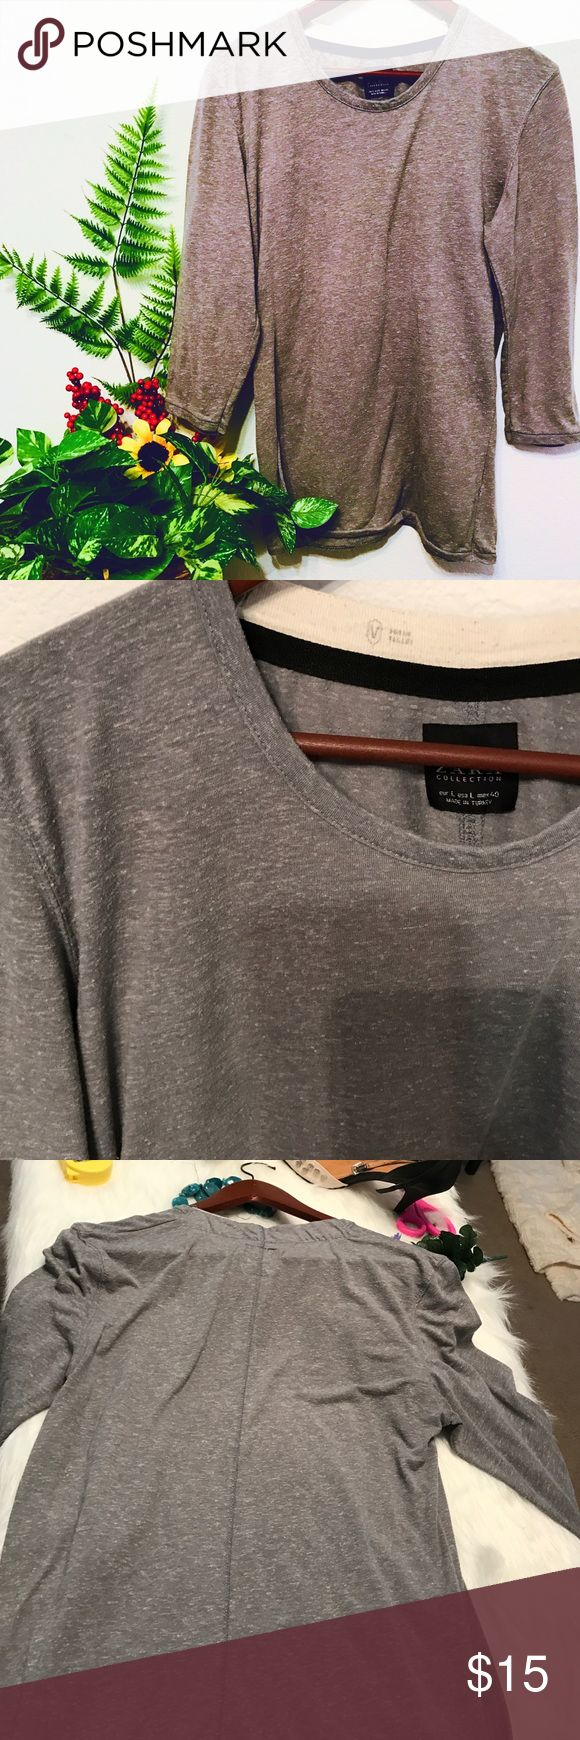 Zara top Super comfy soft material 3/4 sleeves in soft gray.  Great for lounging around😍 Zara Tops Tees - Long Sleeve